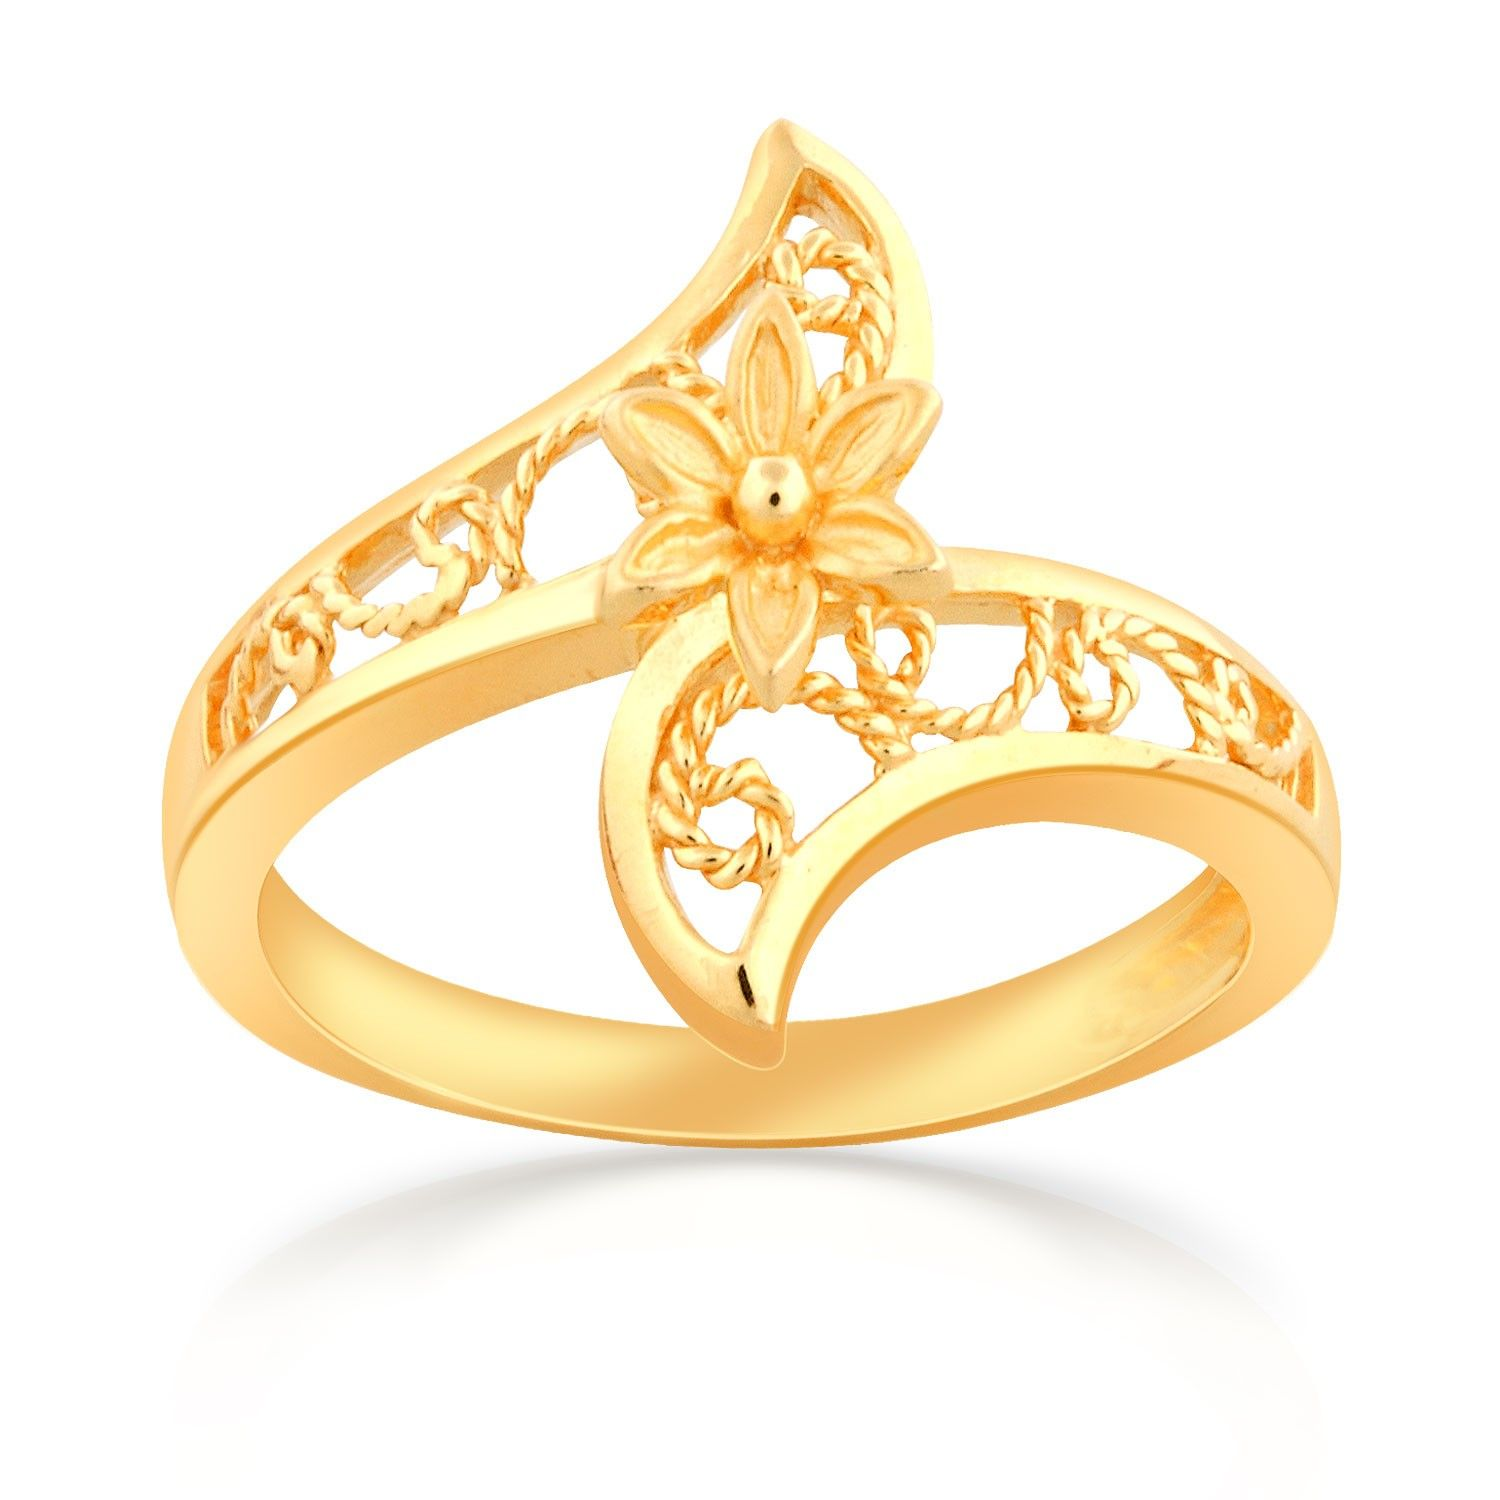 buy malabar gold ring online with 22 kt gold purity which is 916 bis hallmark gold certified easy exchange 14 days return policy